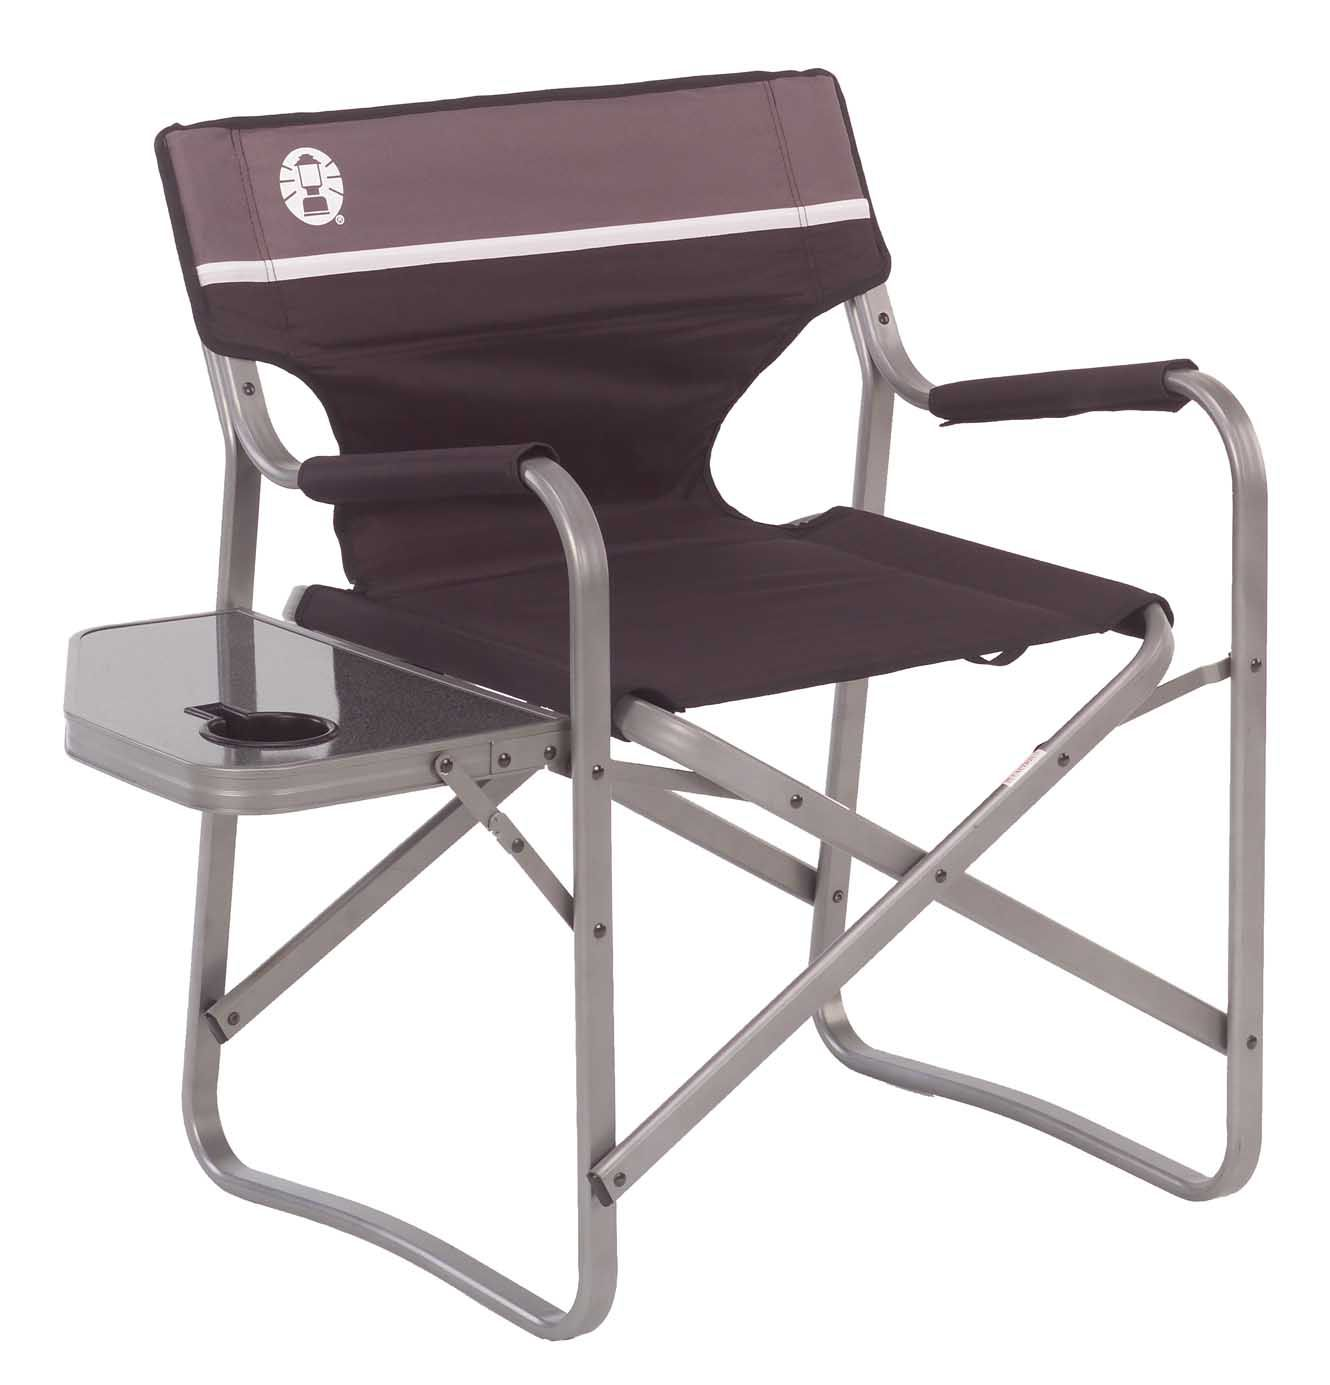 Most Comfortable Camping Chair Aluminum Deck Chair Coleman